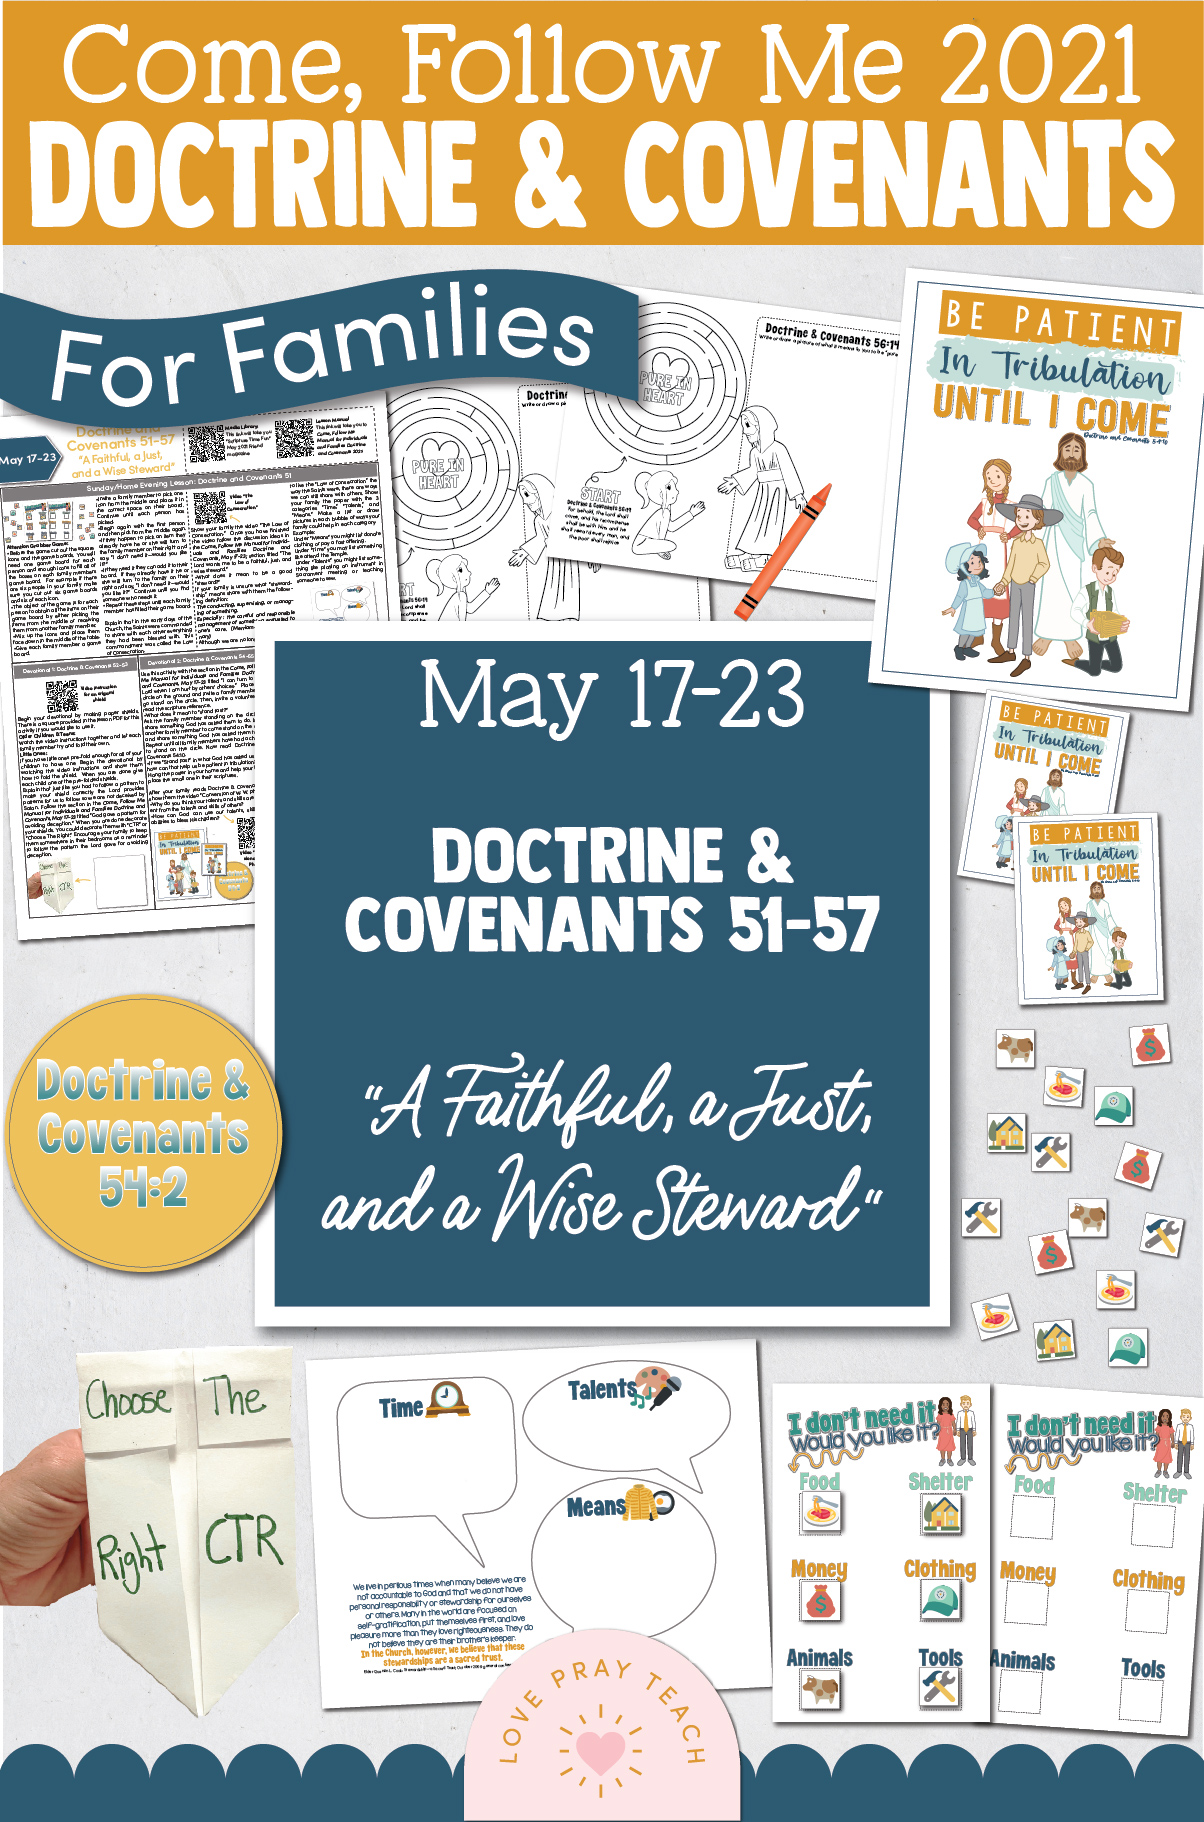 """Come, Follow Me—For Individuals and Families: Doctrine And Covenants 2021, May Week 4 Doctrine and Covenants 51-57: May 17-23, """"A Faithful, a Just, and a Wise Steward"""""""